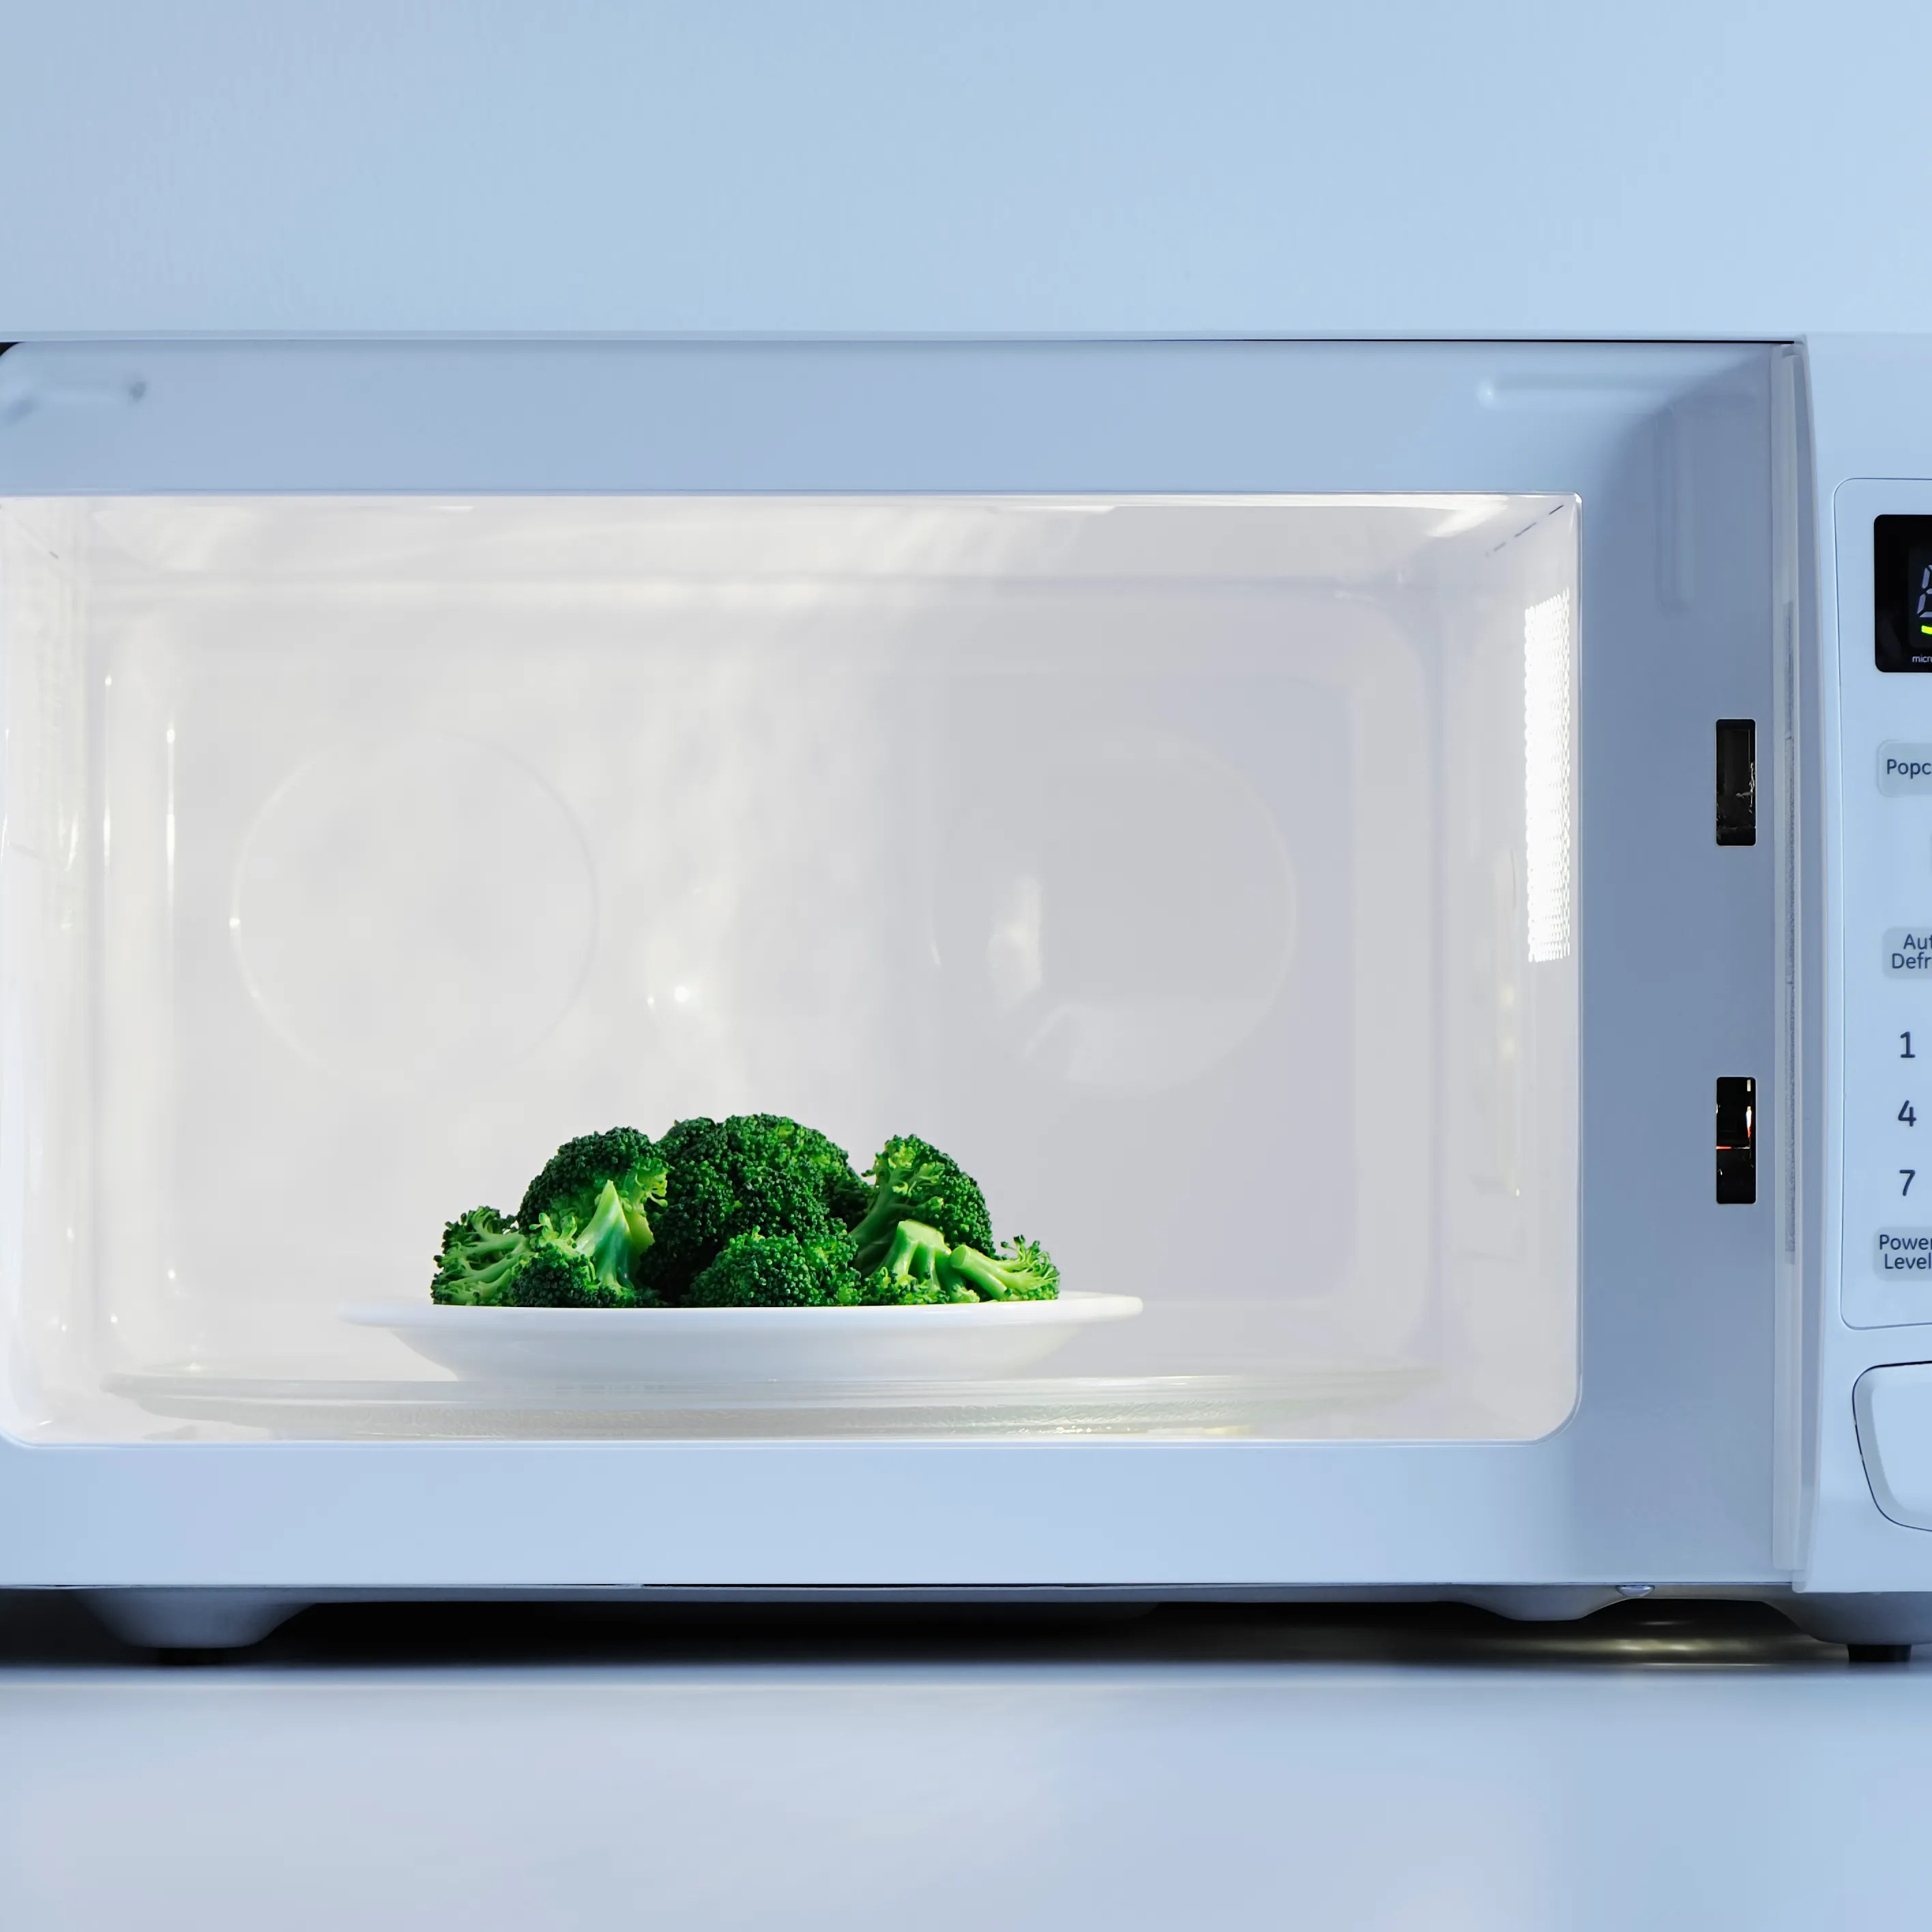 7 office microwave etiquette rules to